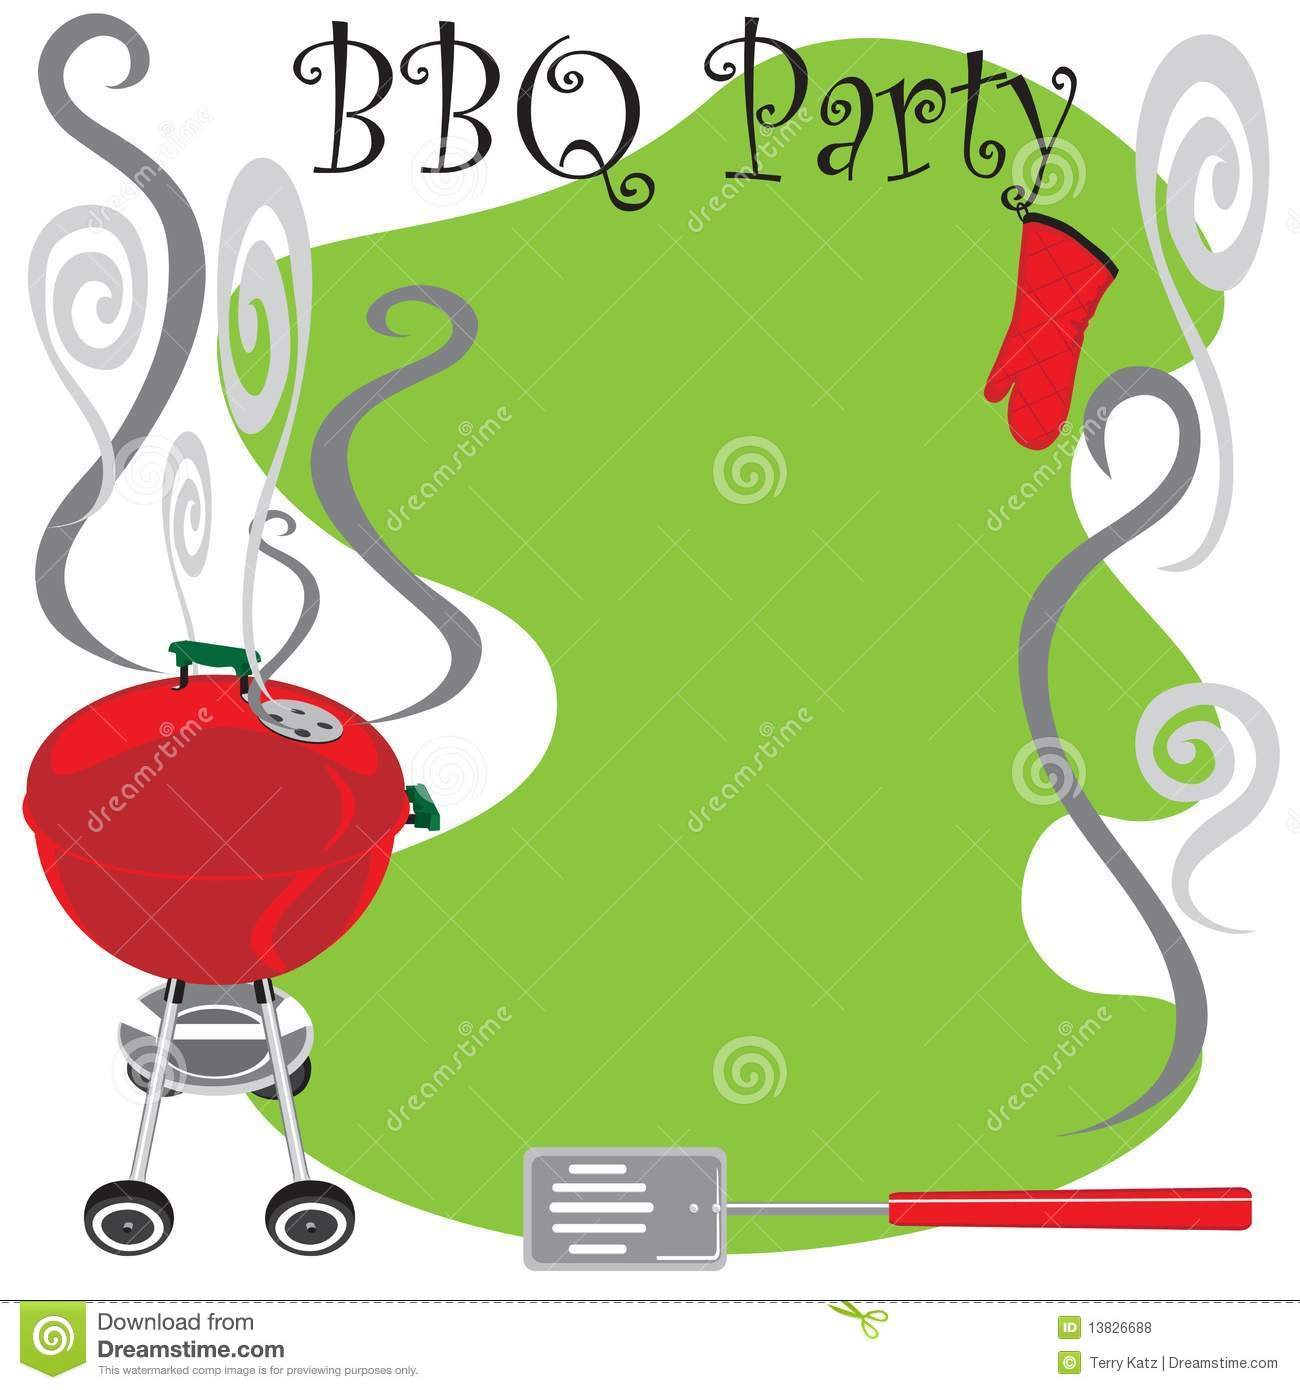 BBQ Party Invitation Royalty Free Stock Photos - Image: 13826688